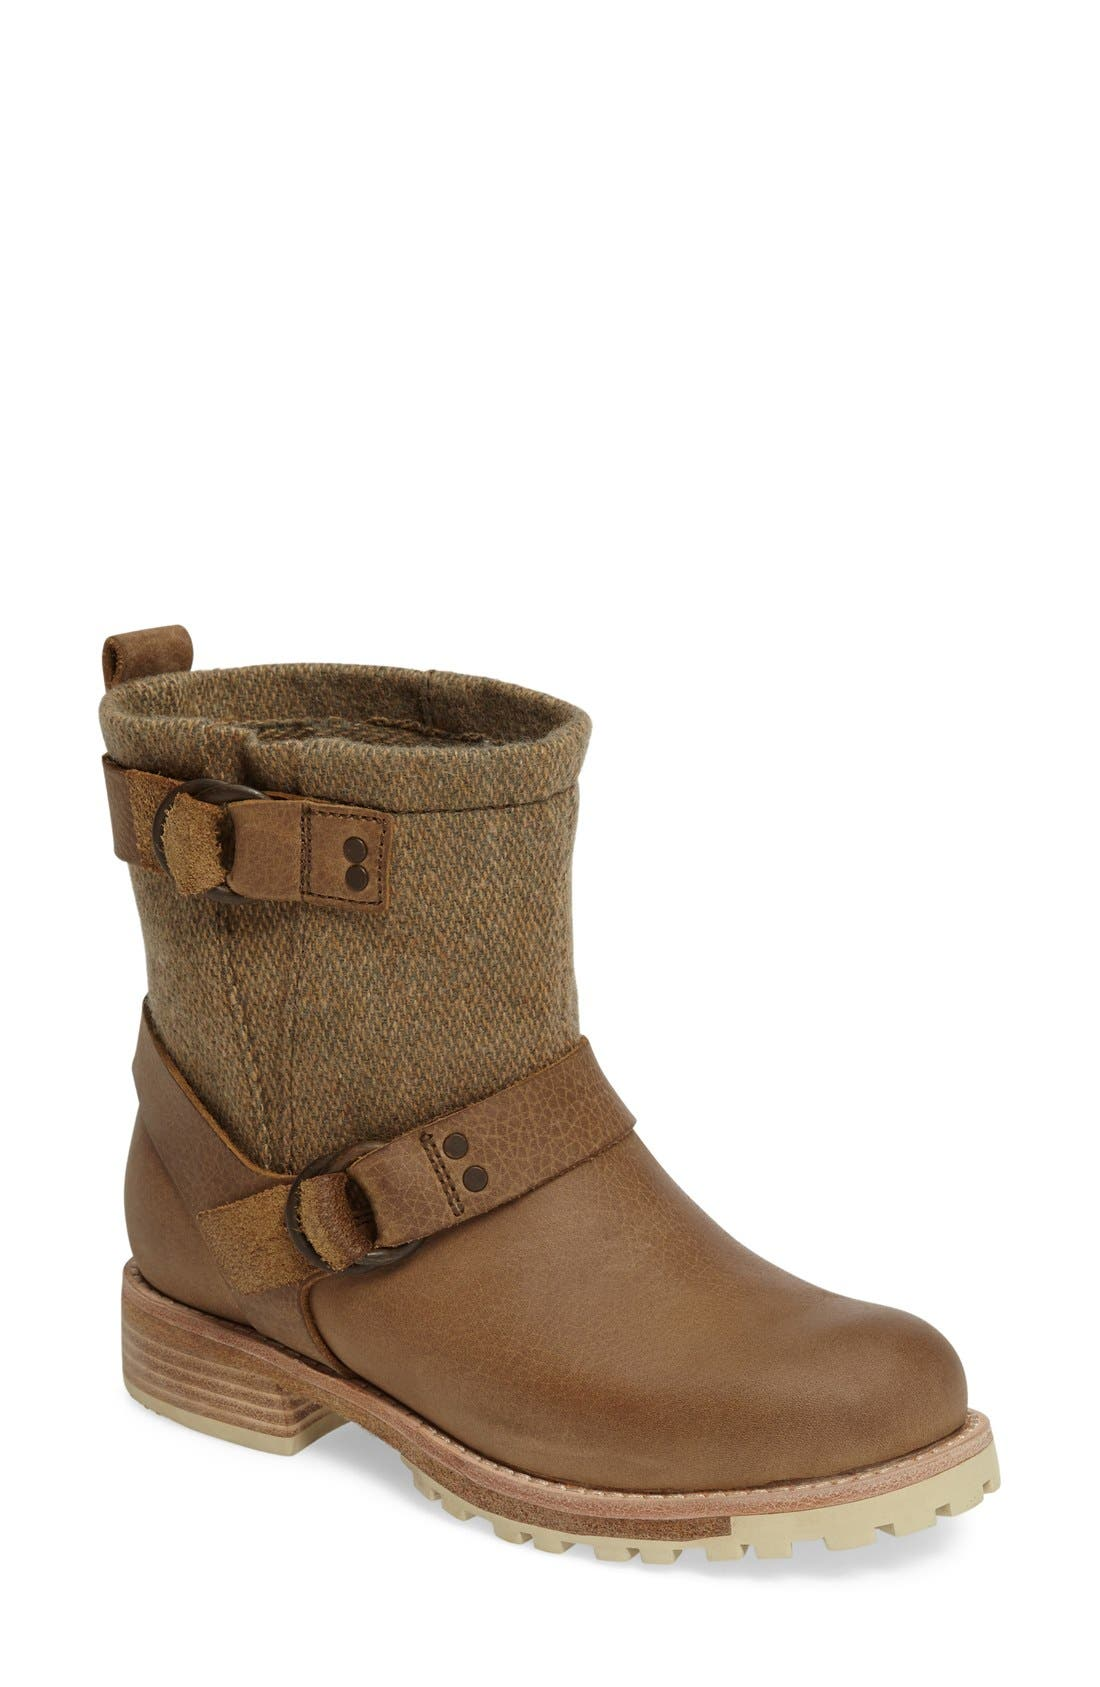 Alternate Image 1 Selected - Woolrich 'Baltimore' Engineer Boot (Women)